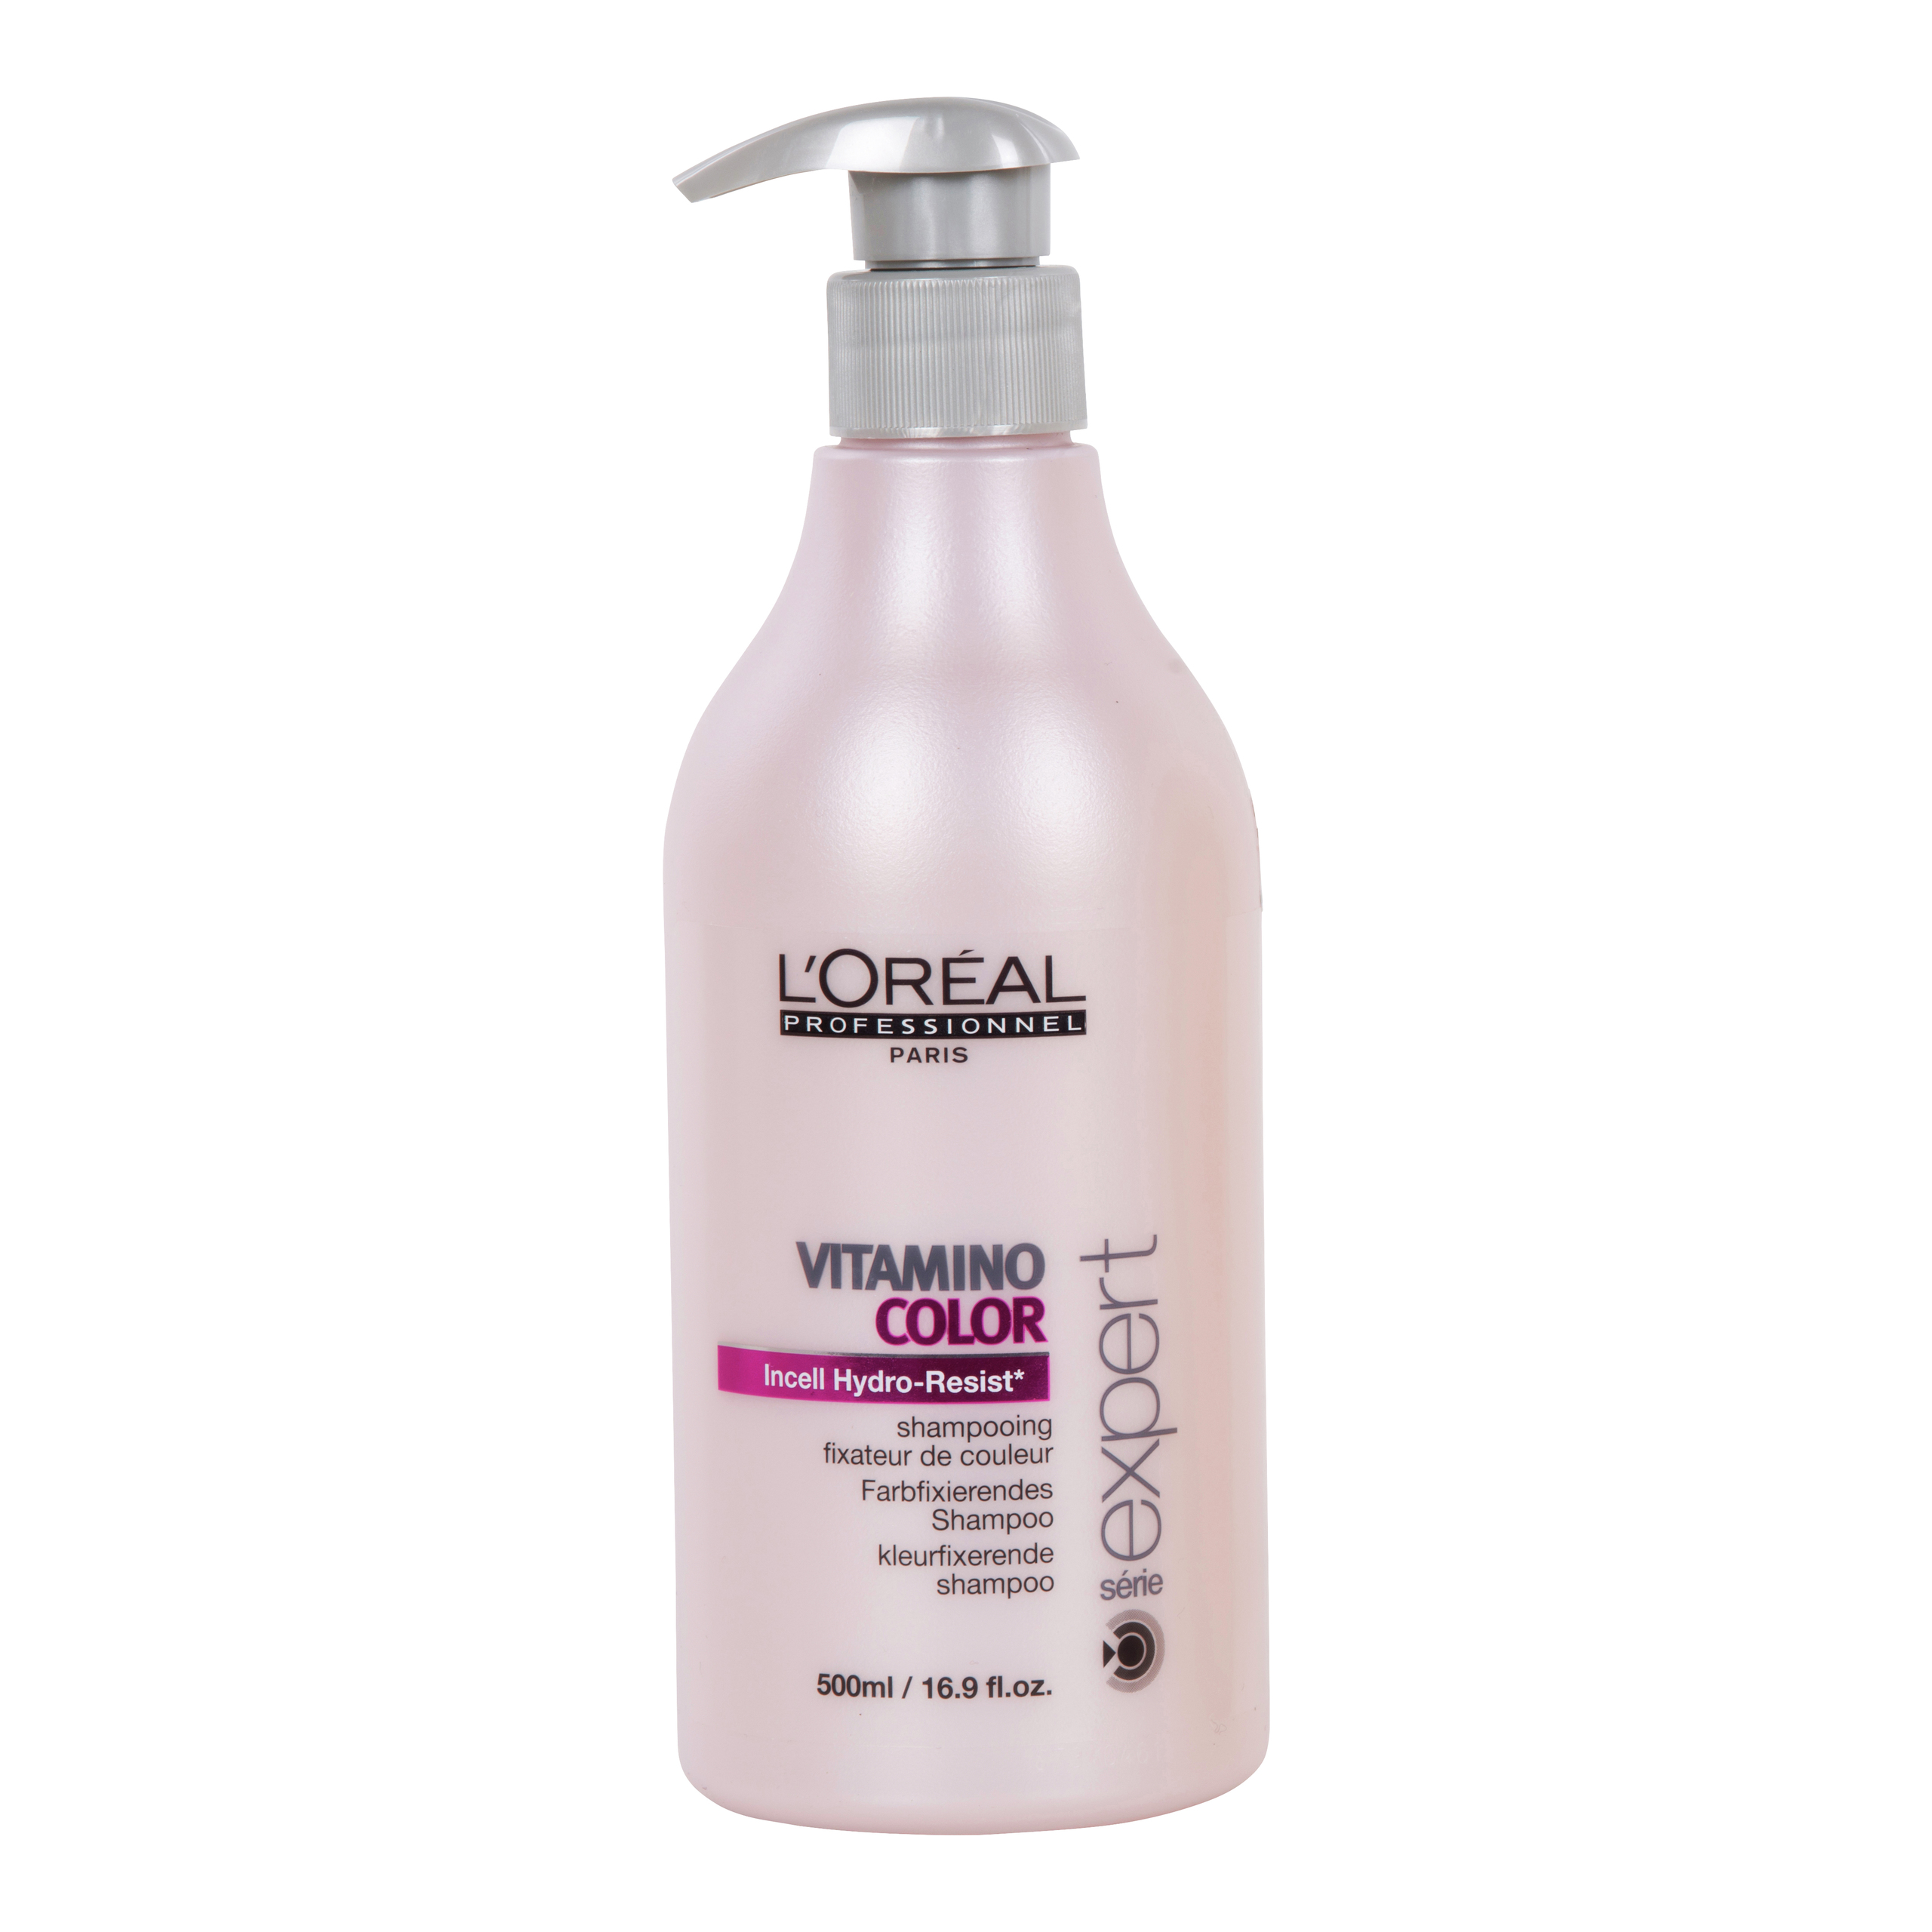 SHAMPOO L'OREAL COLOR-SHA726